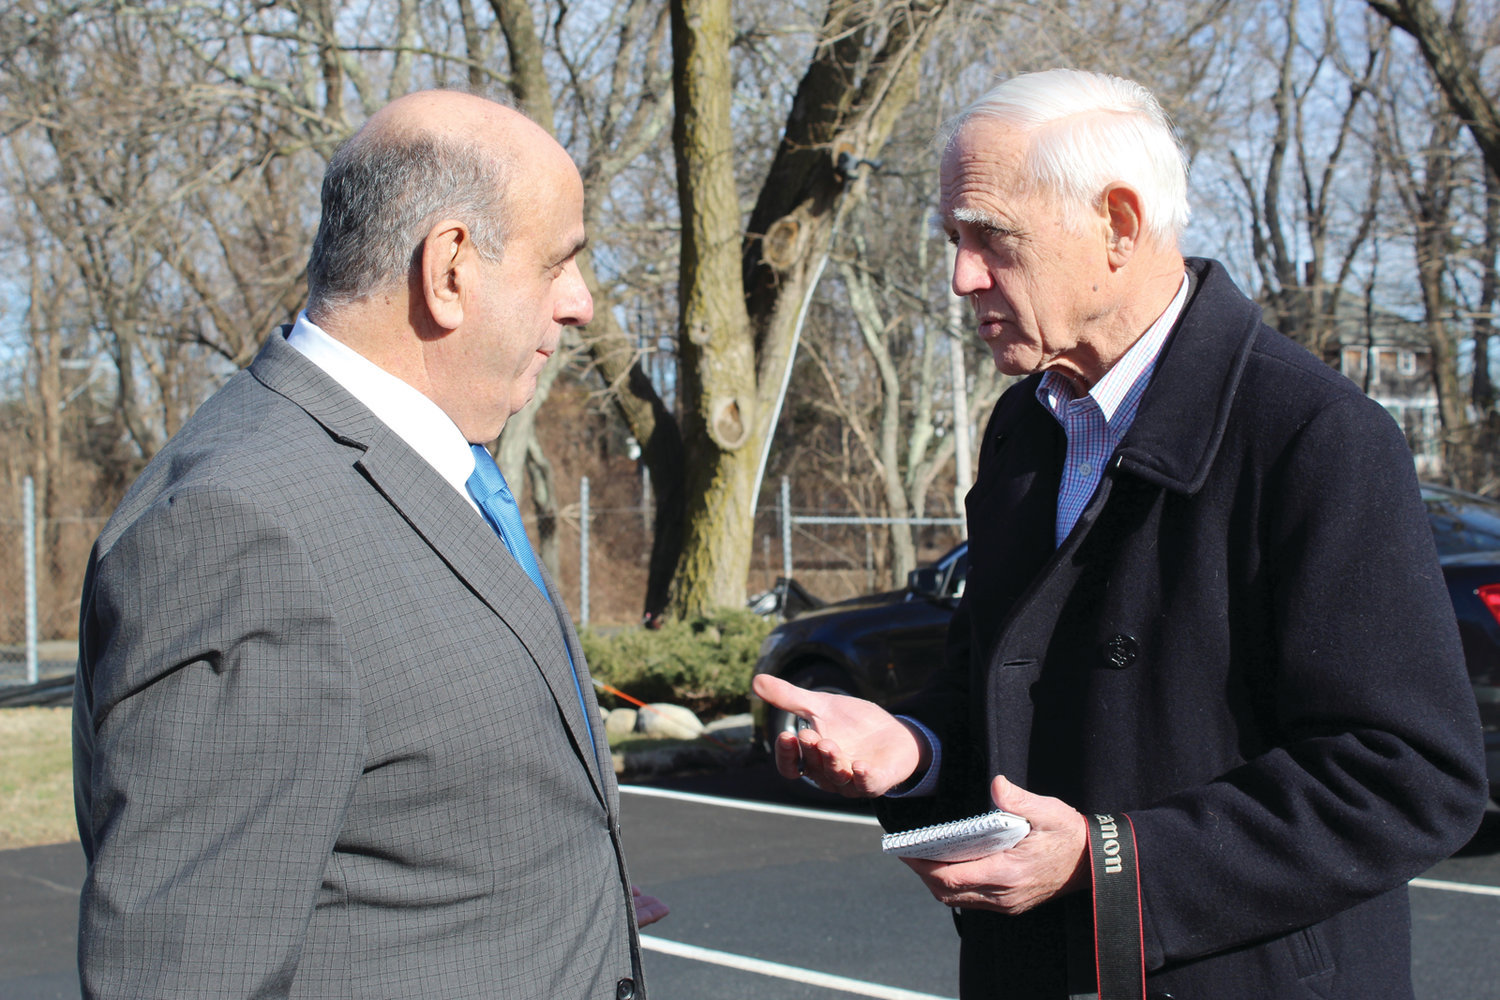 ON THE BEAT: Warwick Beacon publisher and editor John Howell, right, interviews Warwick Mayor Joseph Solomon on Tuesday at Warwick City Hall. Howell, who also publishes the Cranston Herald, Johnston SunRise and Reminder, purchased the Beacon in late 1969.